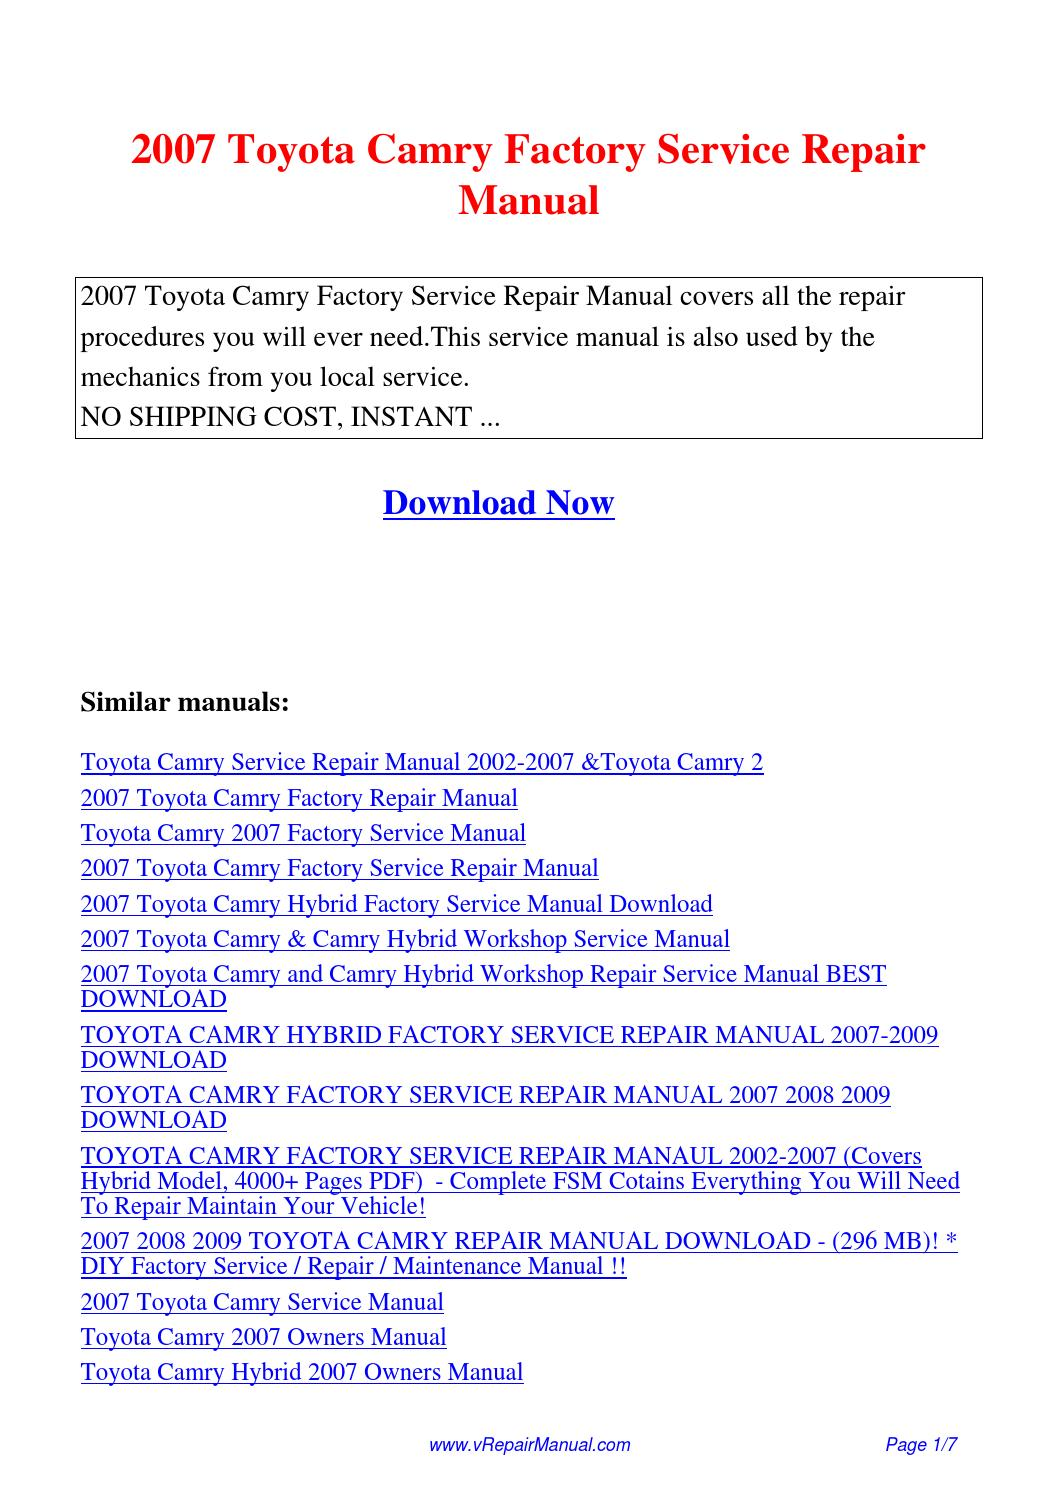 2007 toyota camry factory service repair manual pdf by ting wang issuu rh issuu com toyota camry hybrid service manual pdf 2017 toyota camry hybrid owners manual